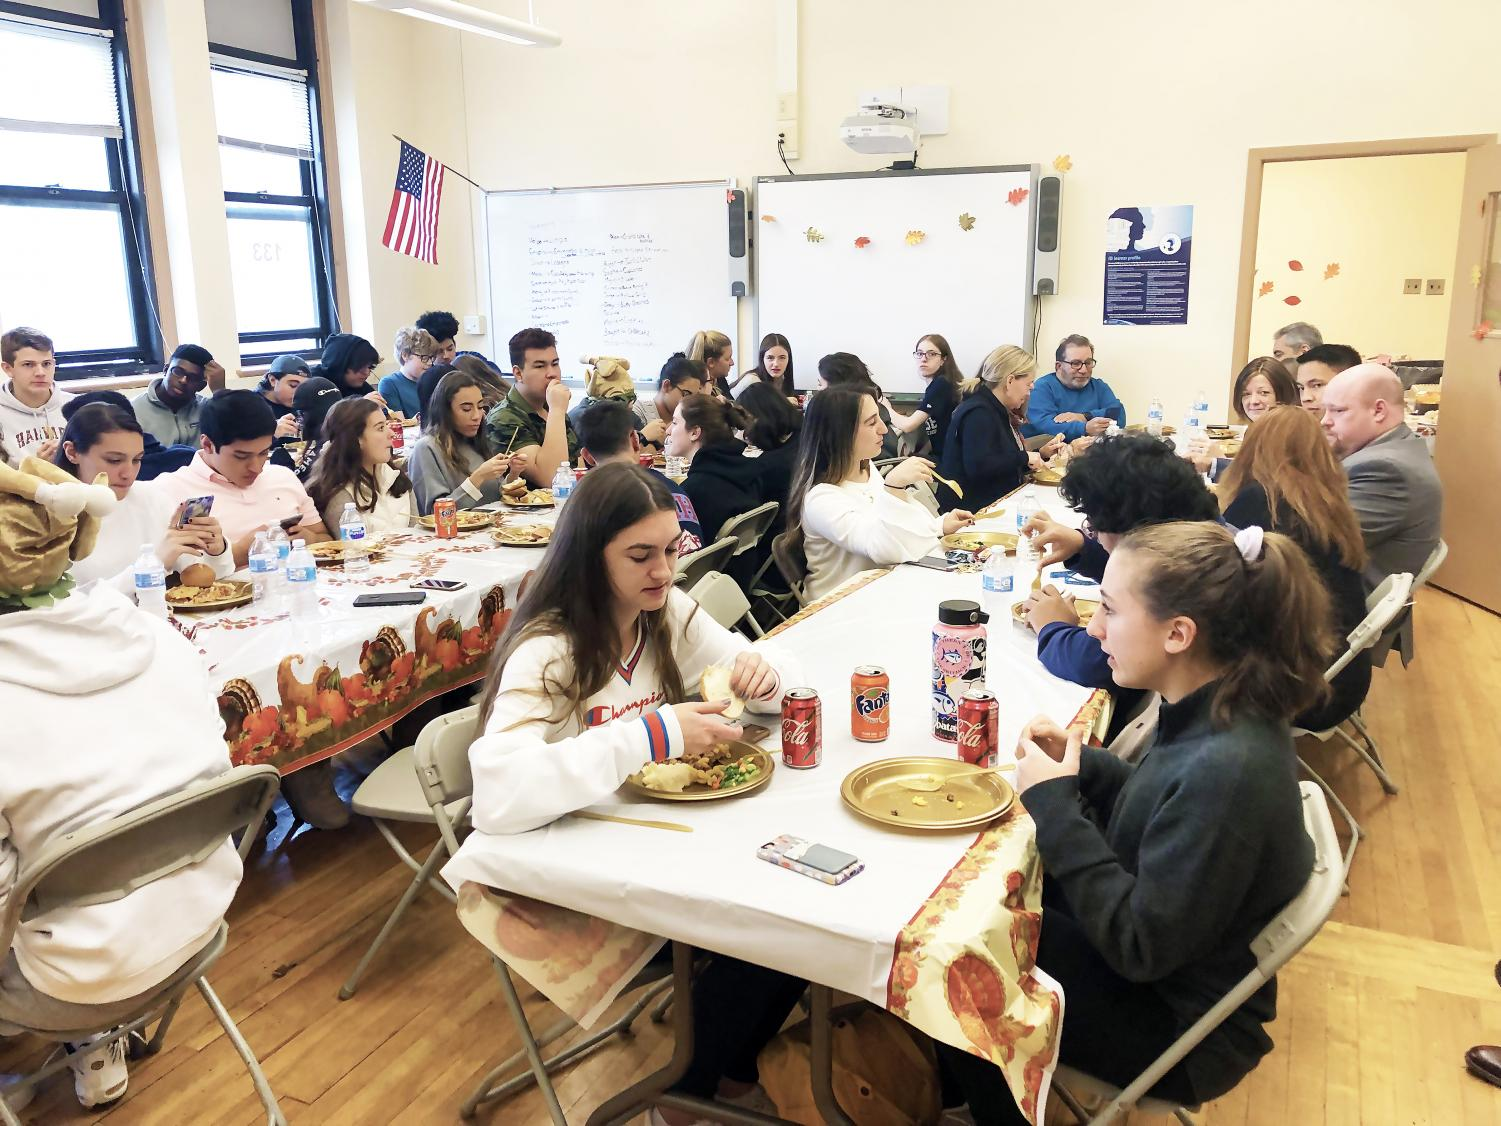 B.R.I.D.G.E. students celebrate community and family by sharing Thanksgiving with  their friends, teachers and administrators.